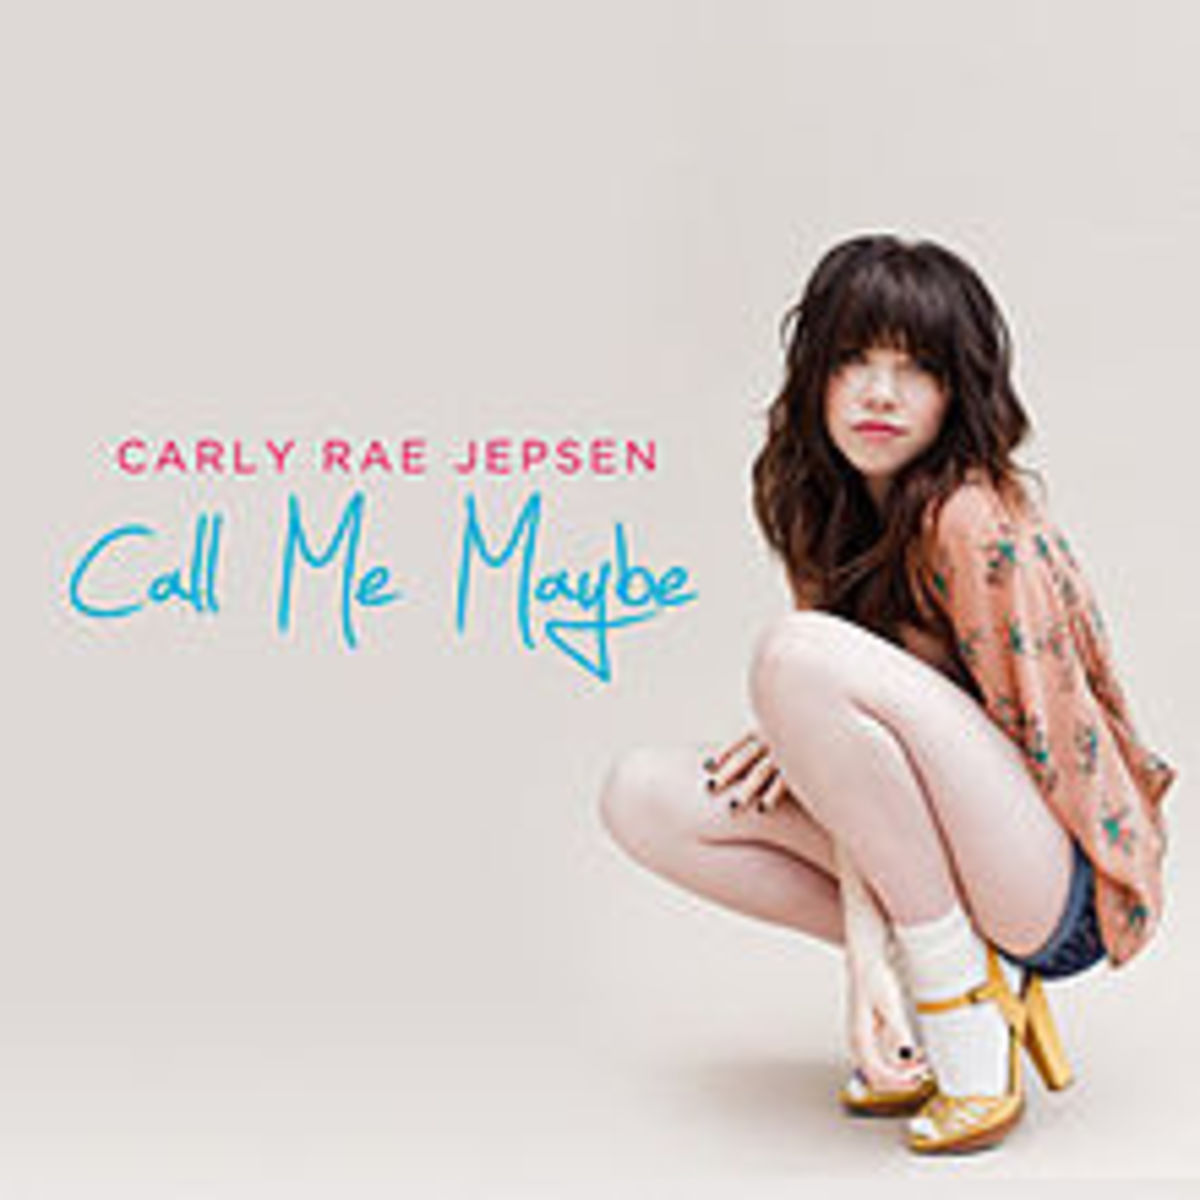 220px-Carly_Rae_Jepsen_-_Call_Me_Maybe